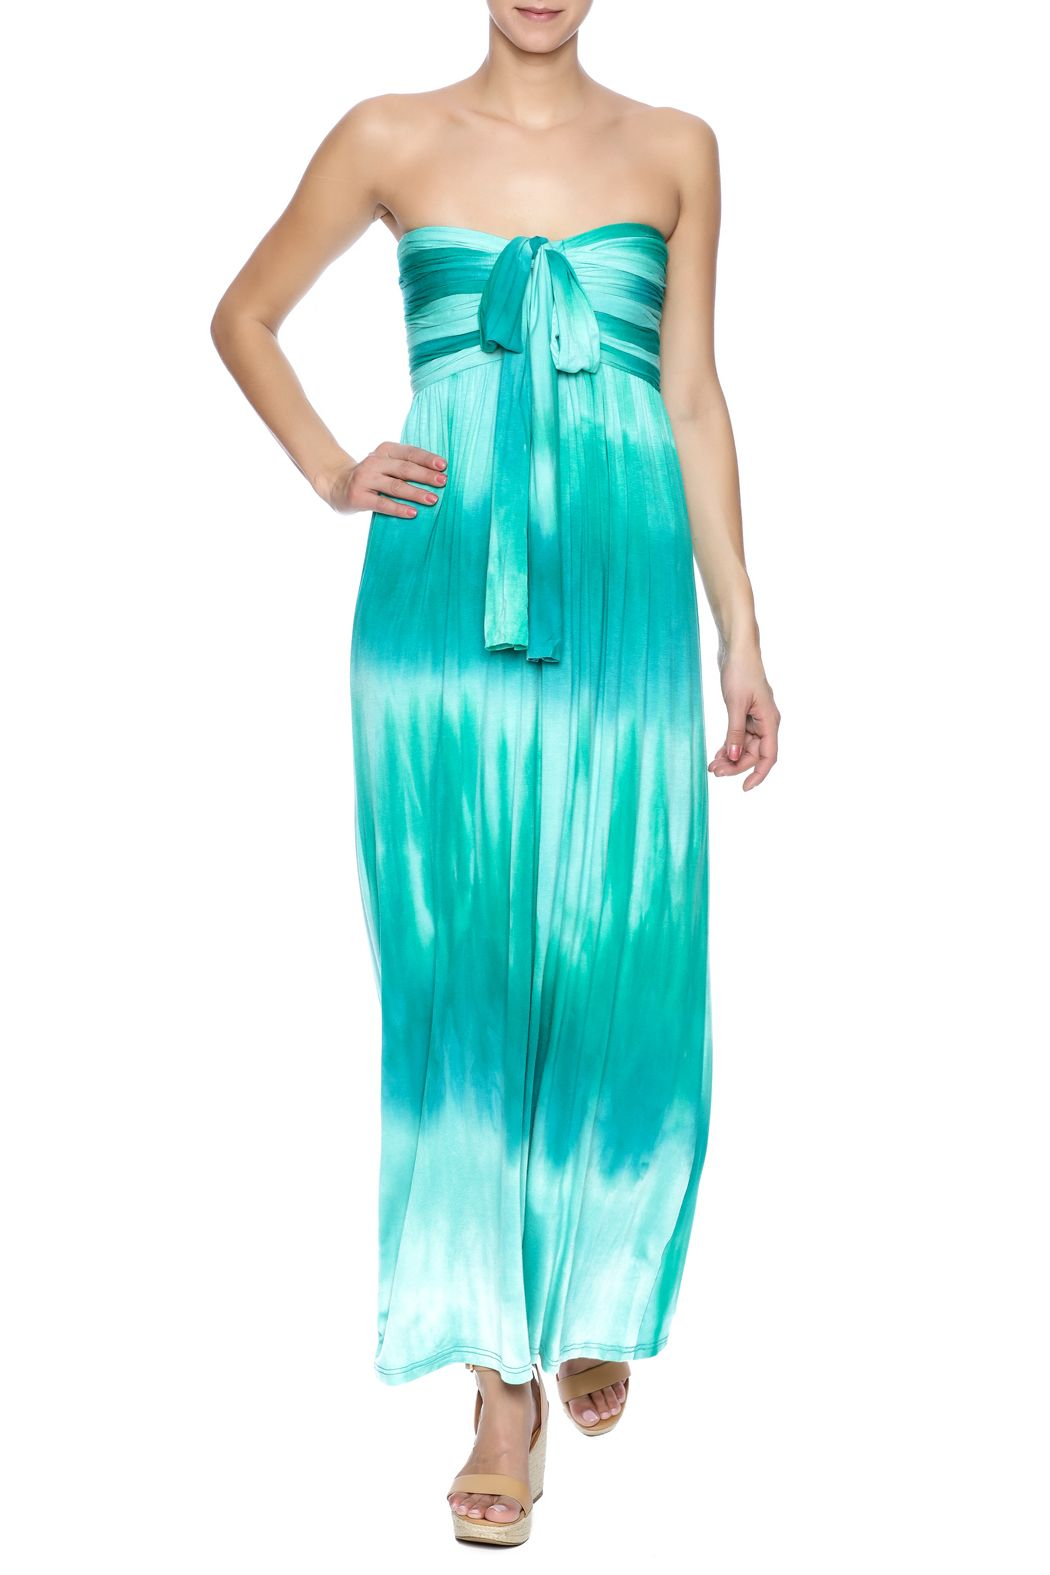 Beautiful Tie Dye Dress Can Be Worn Two Ways As A Halter Or Strapless Once You The Straps Around Your Back Maxi By Catwalk Studio